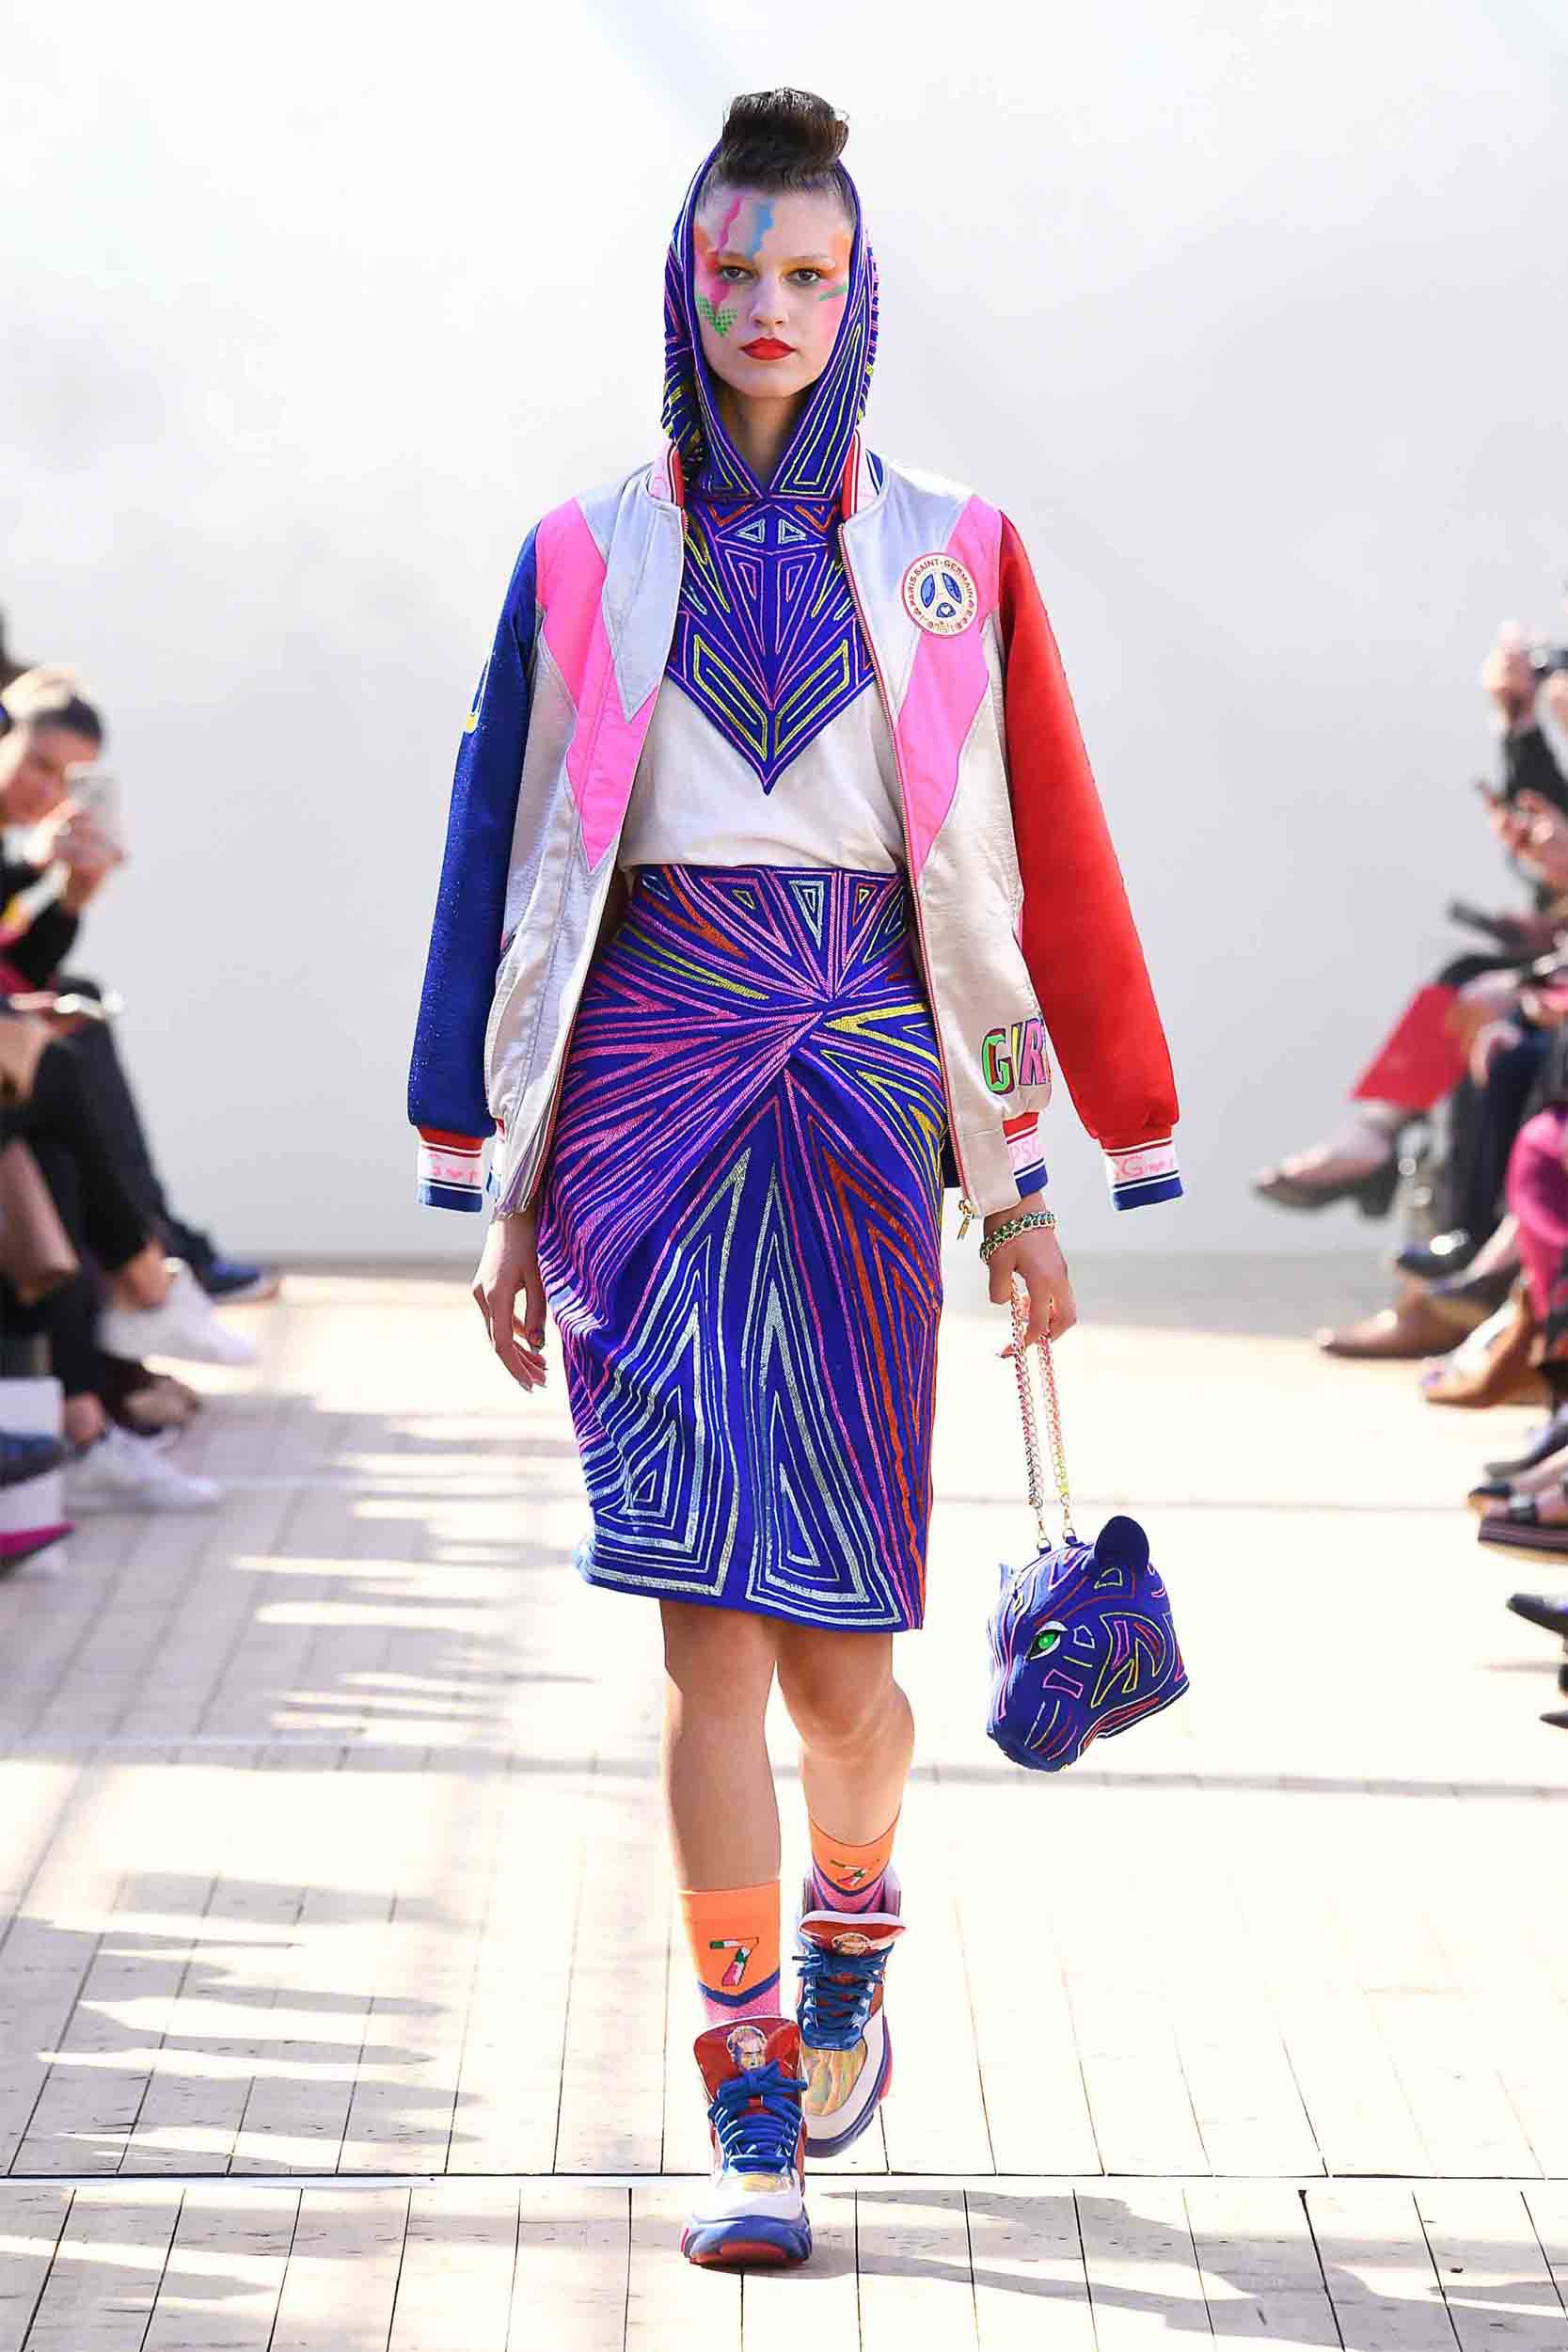 Fashion, Featured, Kanelle, Kanika Jain, Manish Arora, New York Fashion Week 2019, Online Exclusive, Paris Fashion Week 2019, Rahul Mishra, Ready-To-Wear Spring 2019, Spring/Summer 2019, Style